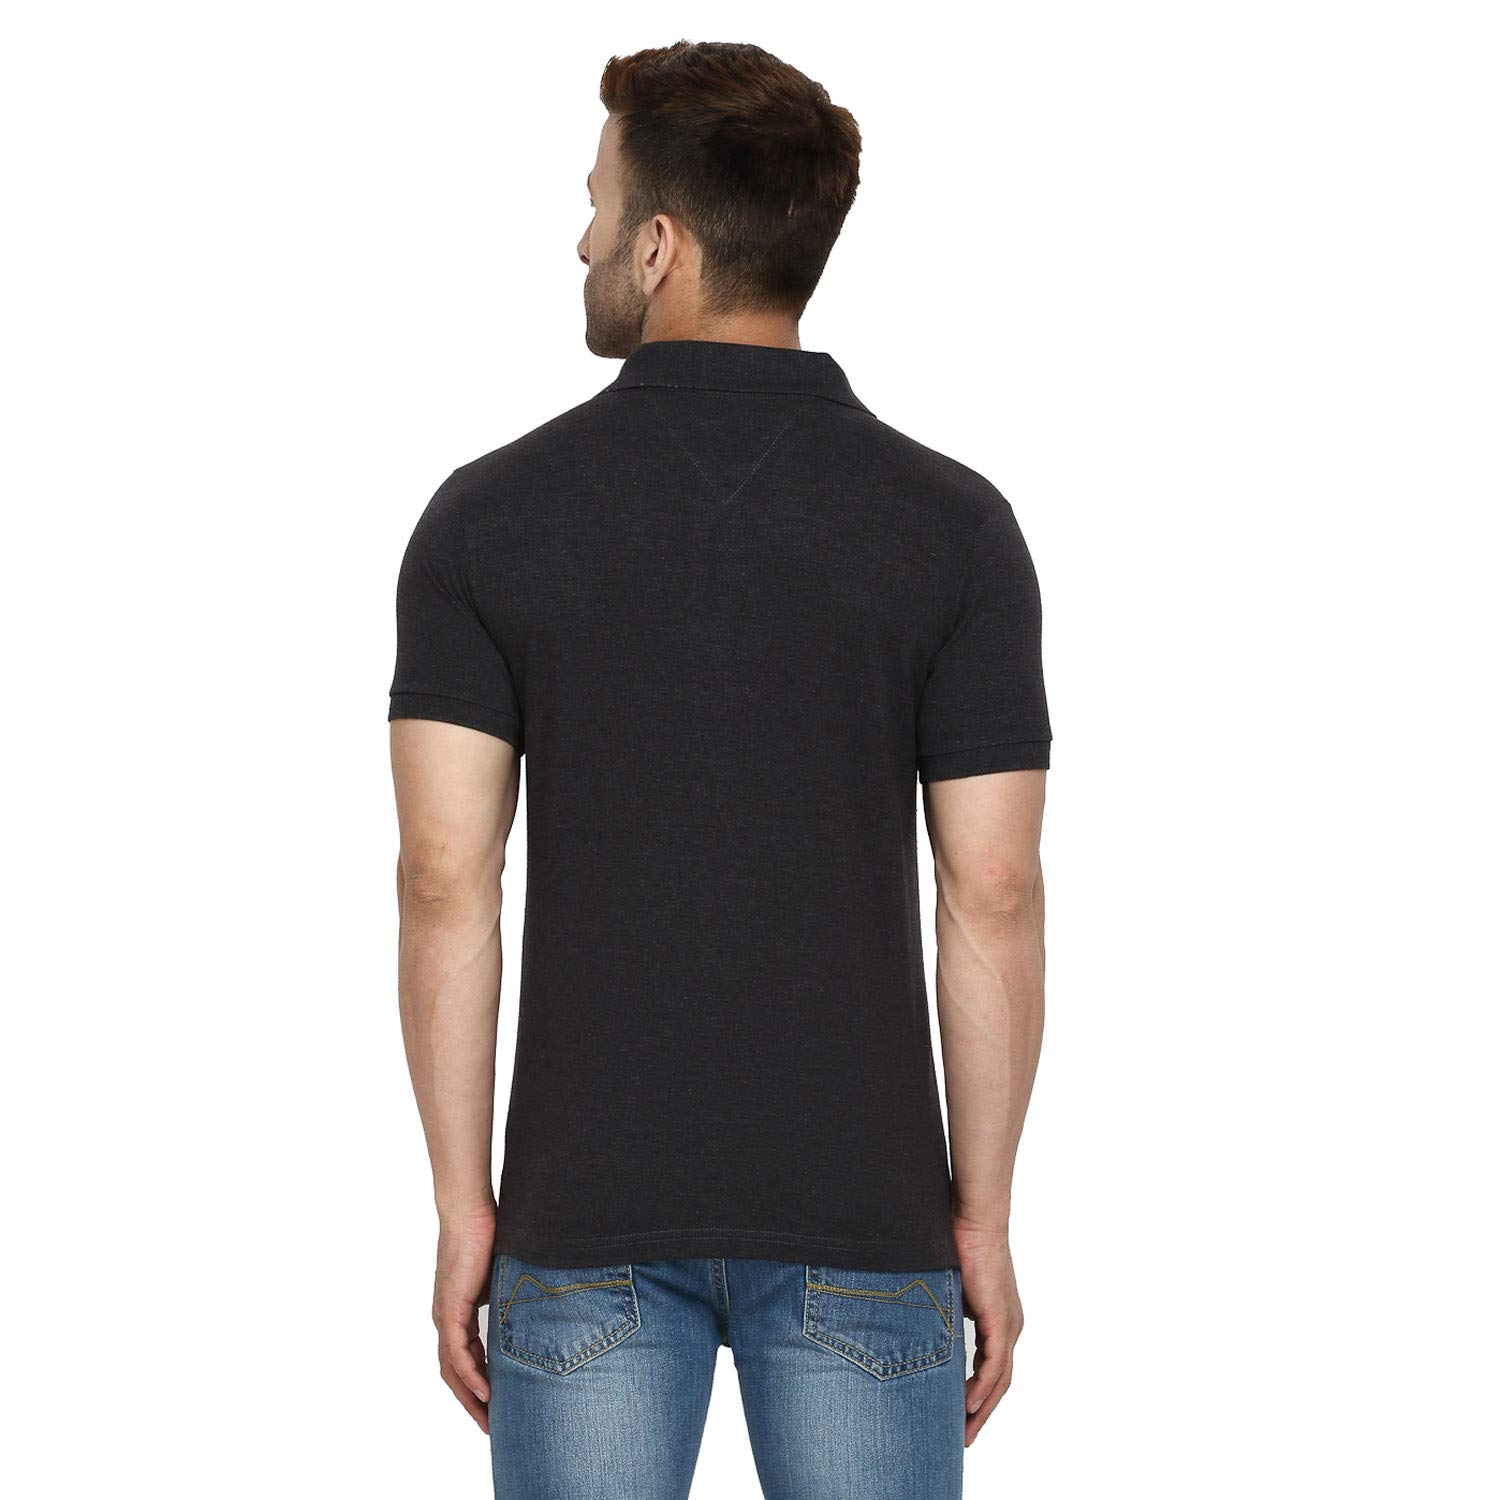 56c9218d0 CHKOKKO Two Button Half Sleeves Polo Neck Cotton T Shirts for Mens:  Amazon.in: Clothing & Accessories